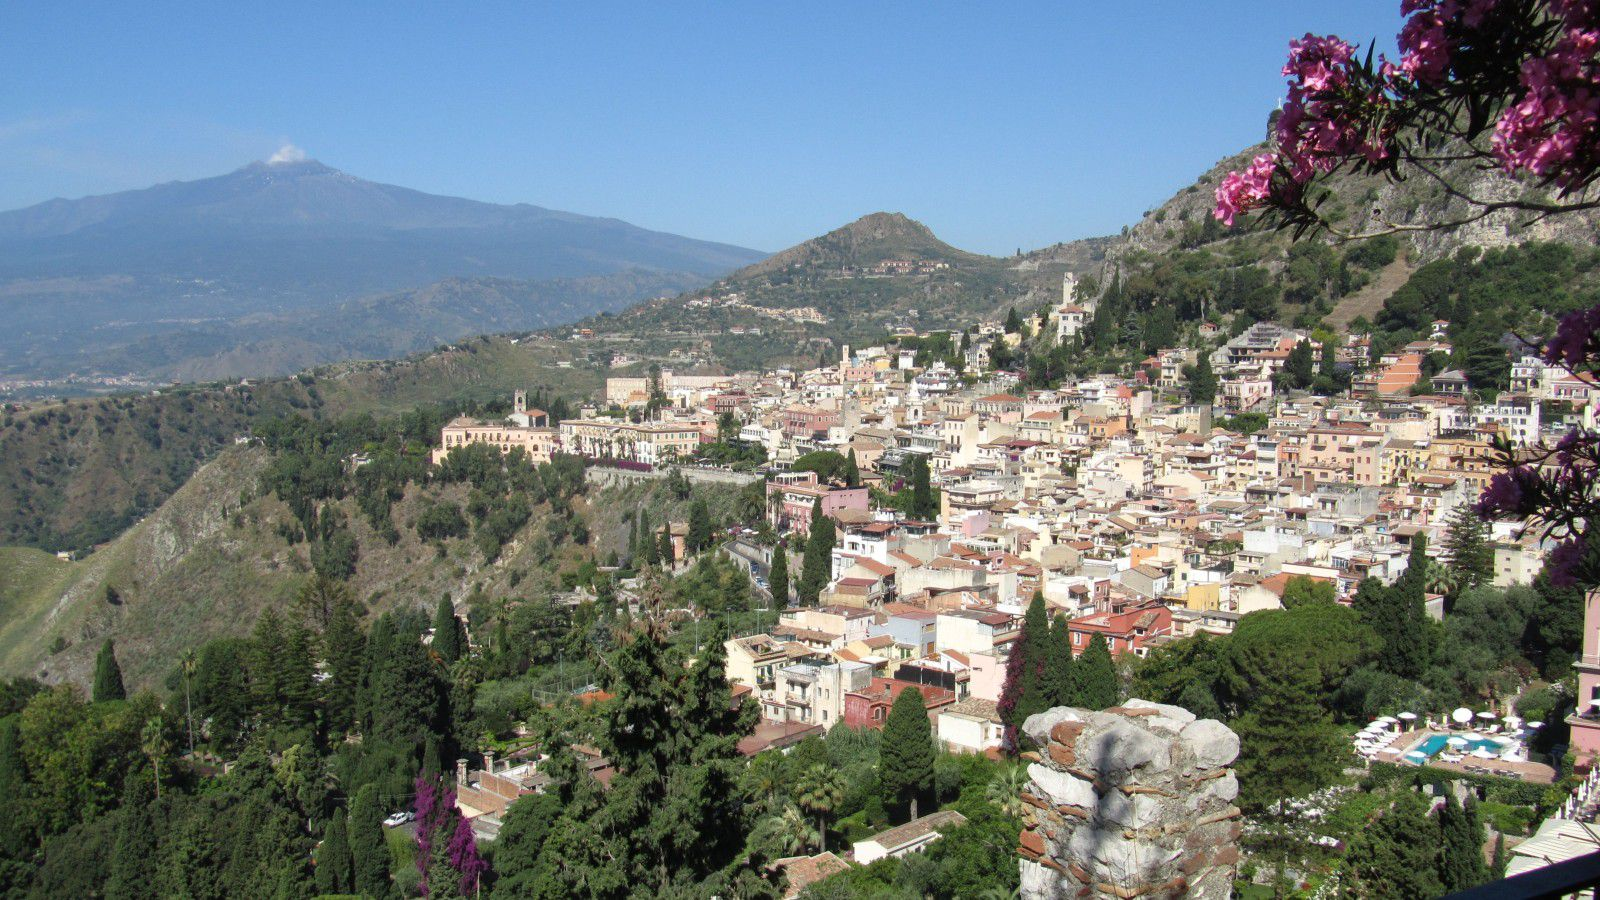 http://idata.over-blog.com/0/32/10/53/villes-geo-urbaine/Taormina.jpg